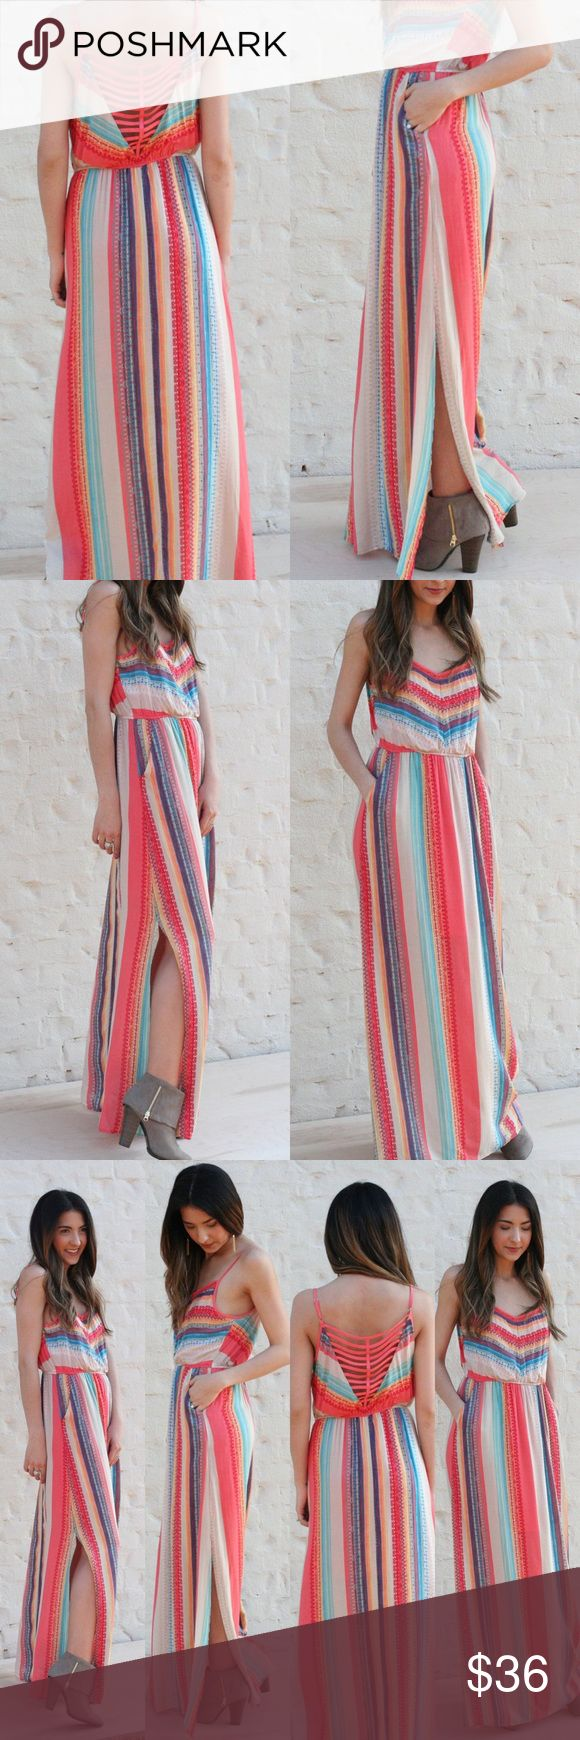 Kaleidoscope Maxi Dress Multi Color Maxi dress with pockets and side slit detail. Adorable cut-out back. Perfect for spring and summer! Dresses Maxi